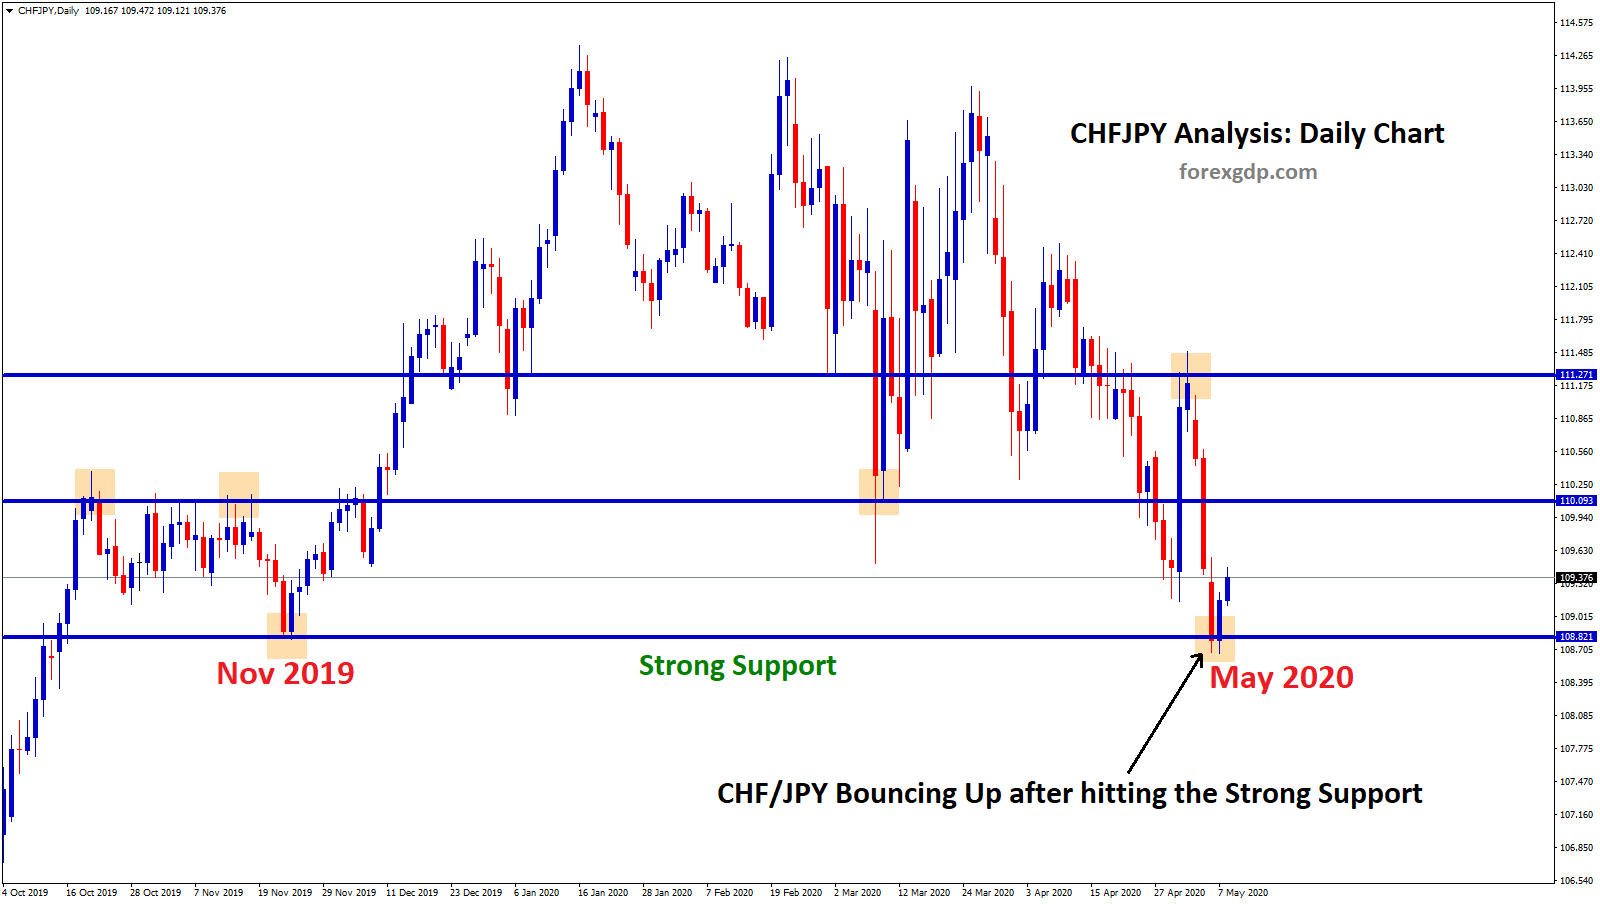 CHFJPY strong support zone reached after 6 months